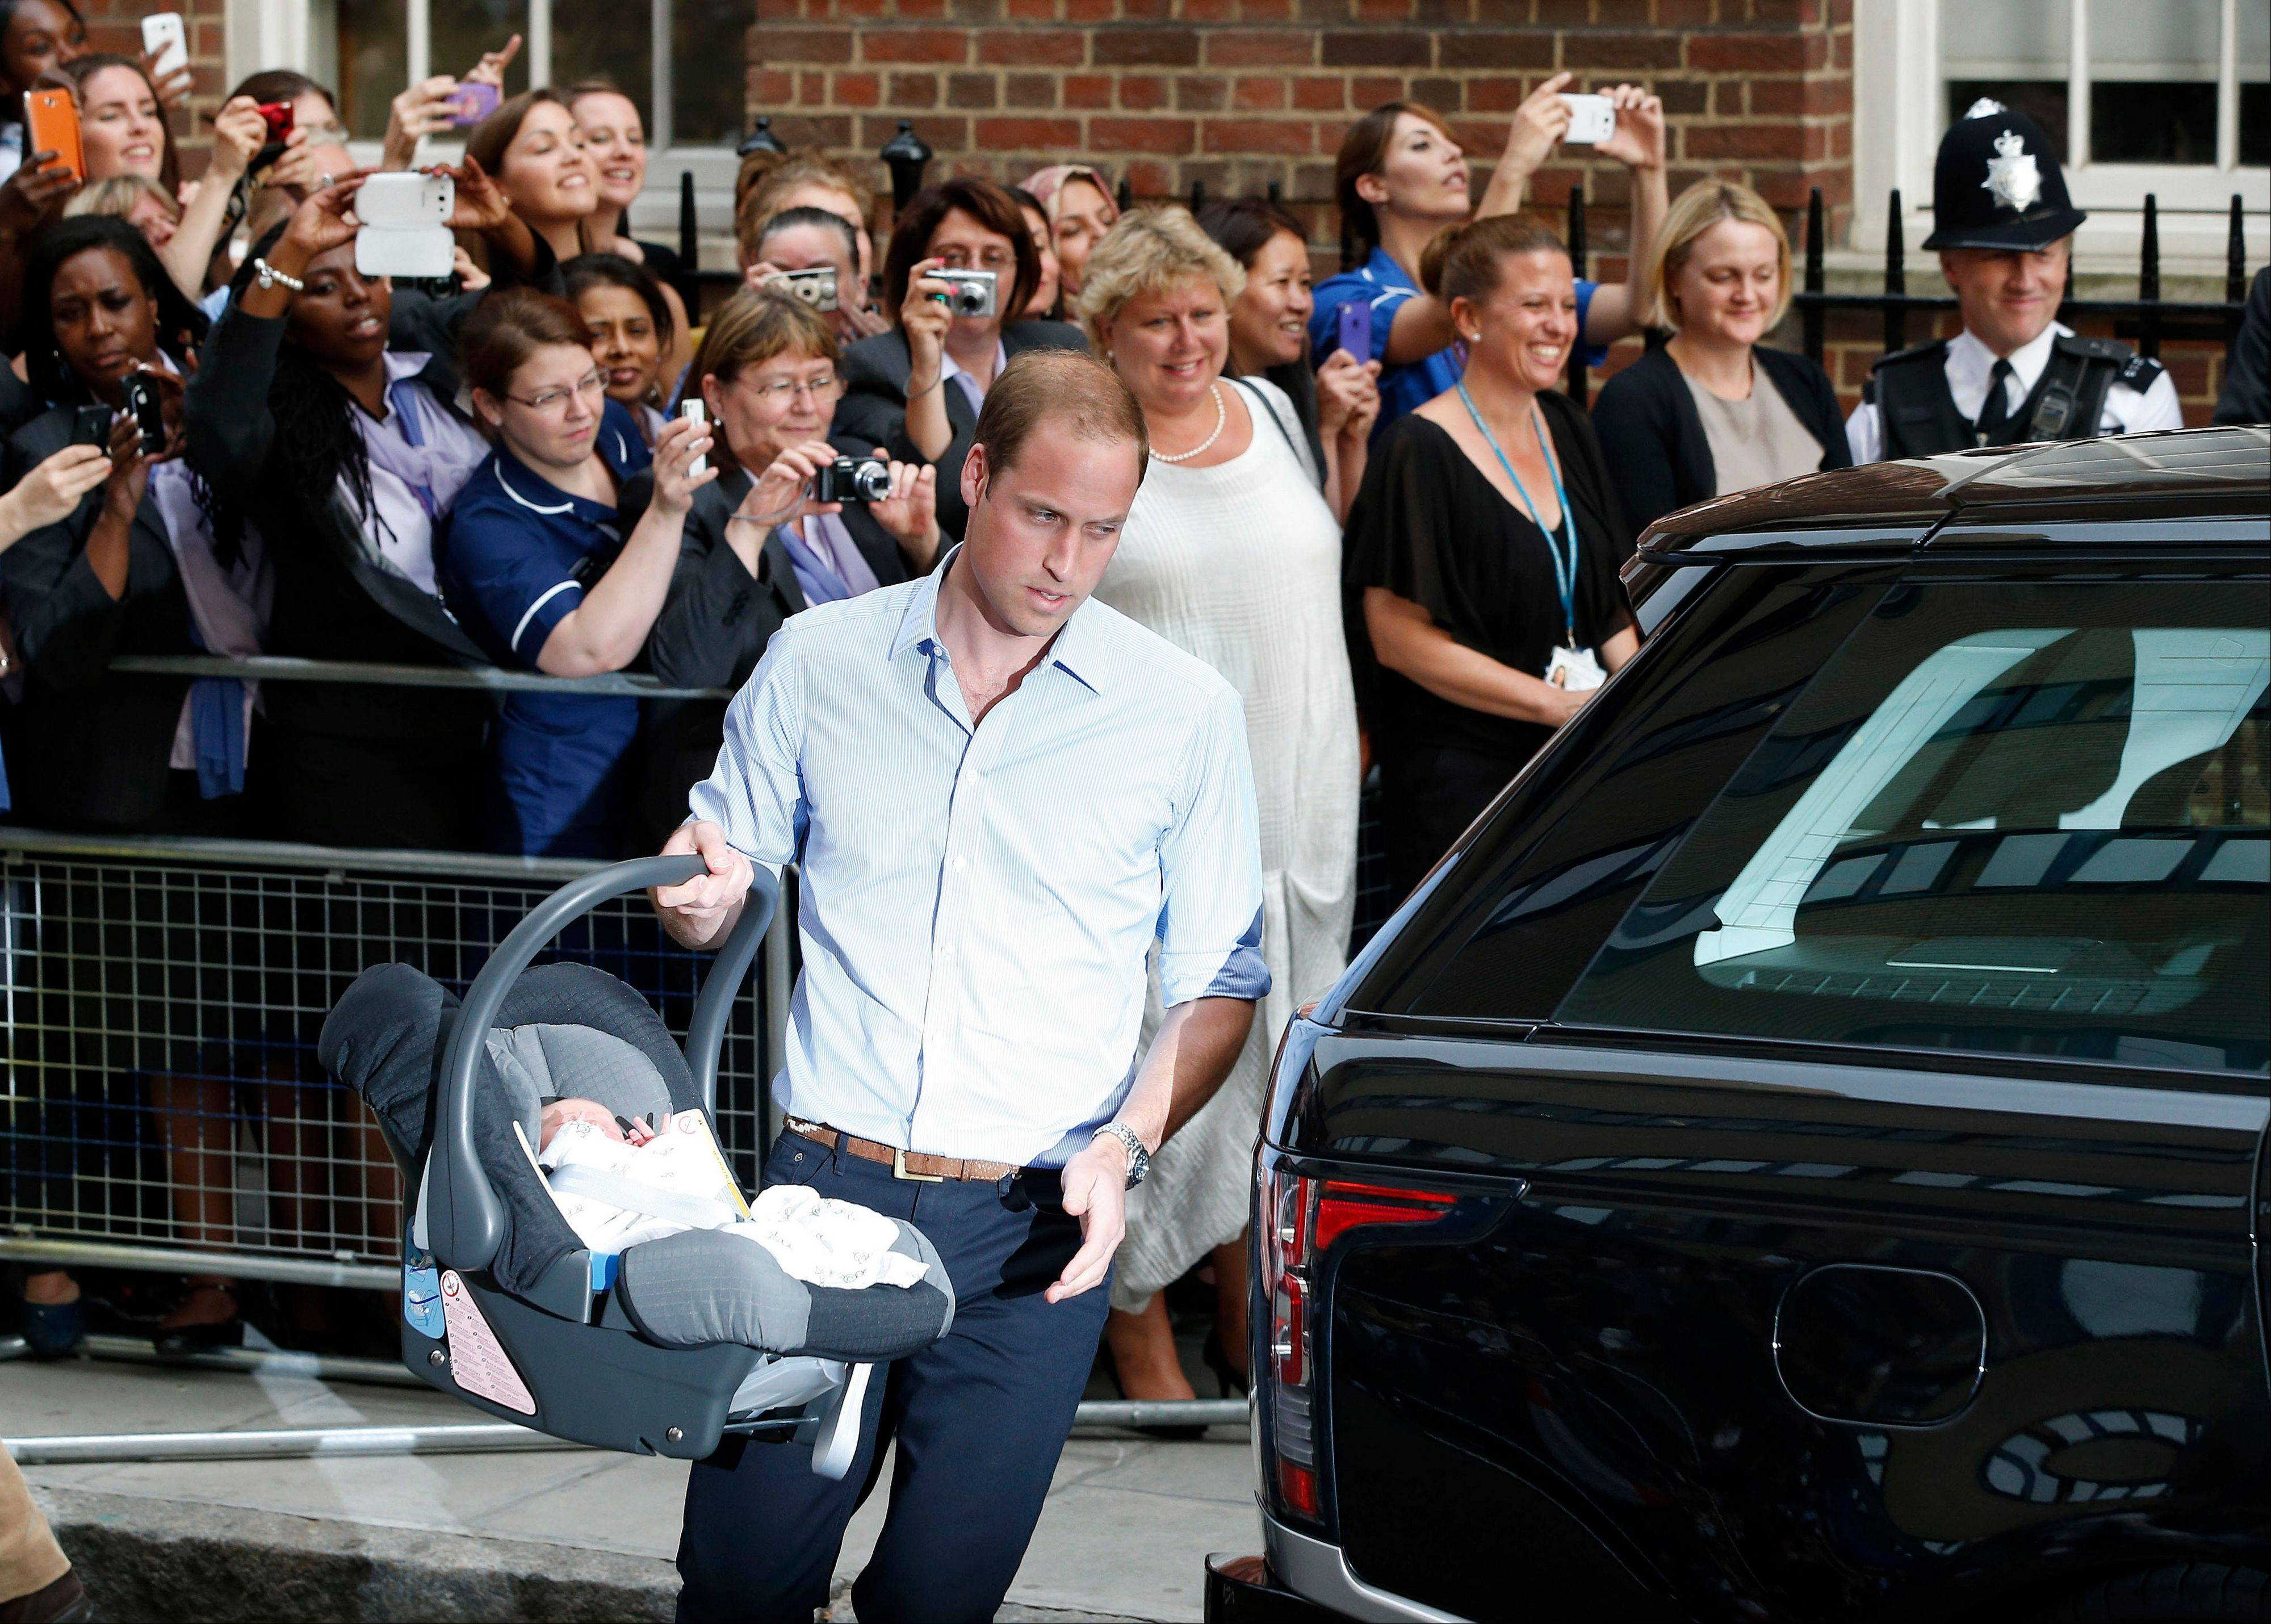 ASSOCIATED PRESSBritain's Prince William carries his son the Prince of Cambridge into a car outside St. Mary's Hospital exclusive Lindo Wing in London.